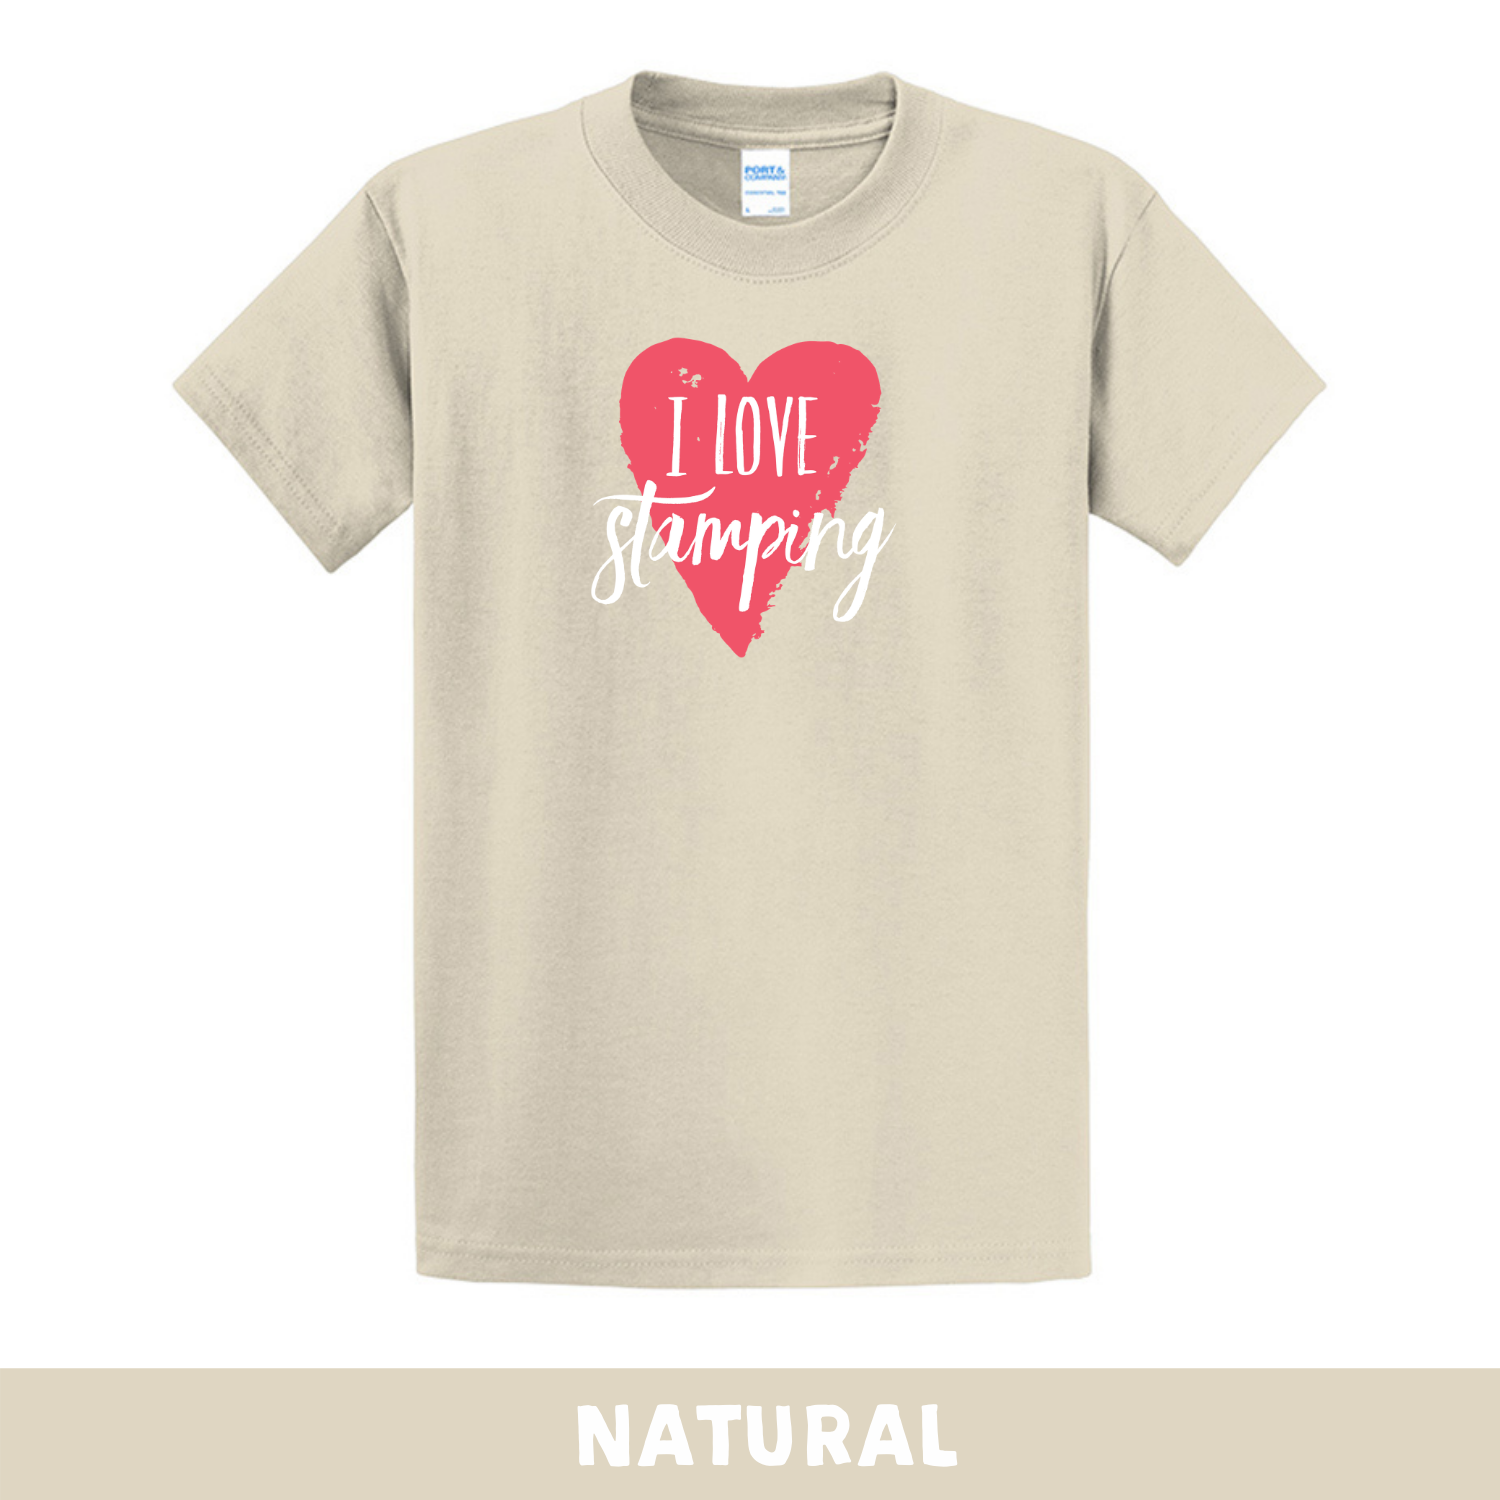 Natural - Crew Neck Unisex T-Shirt - I Love Stamping